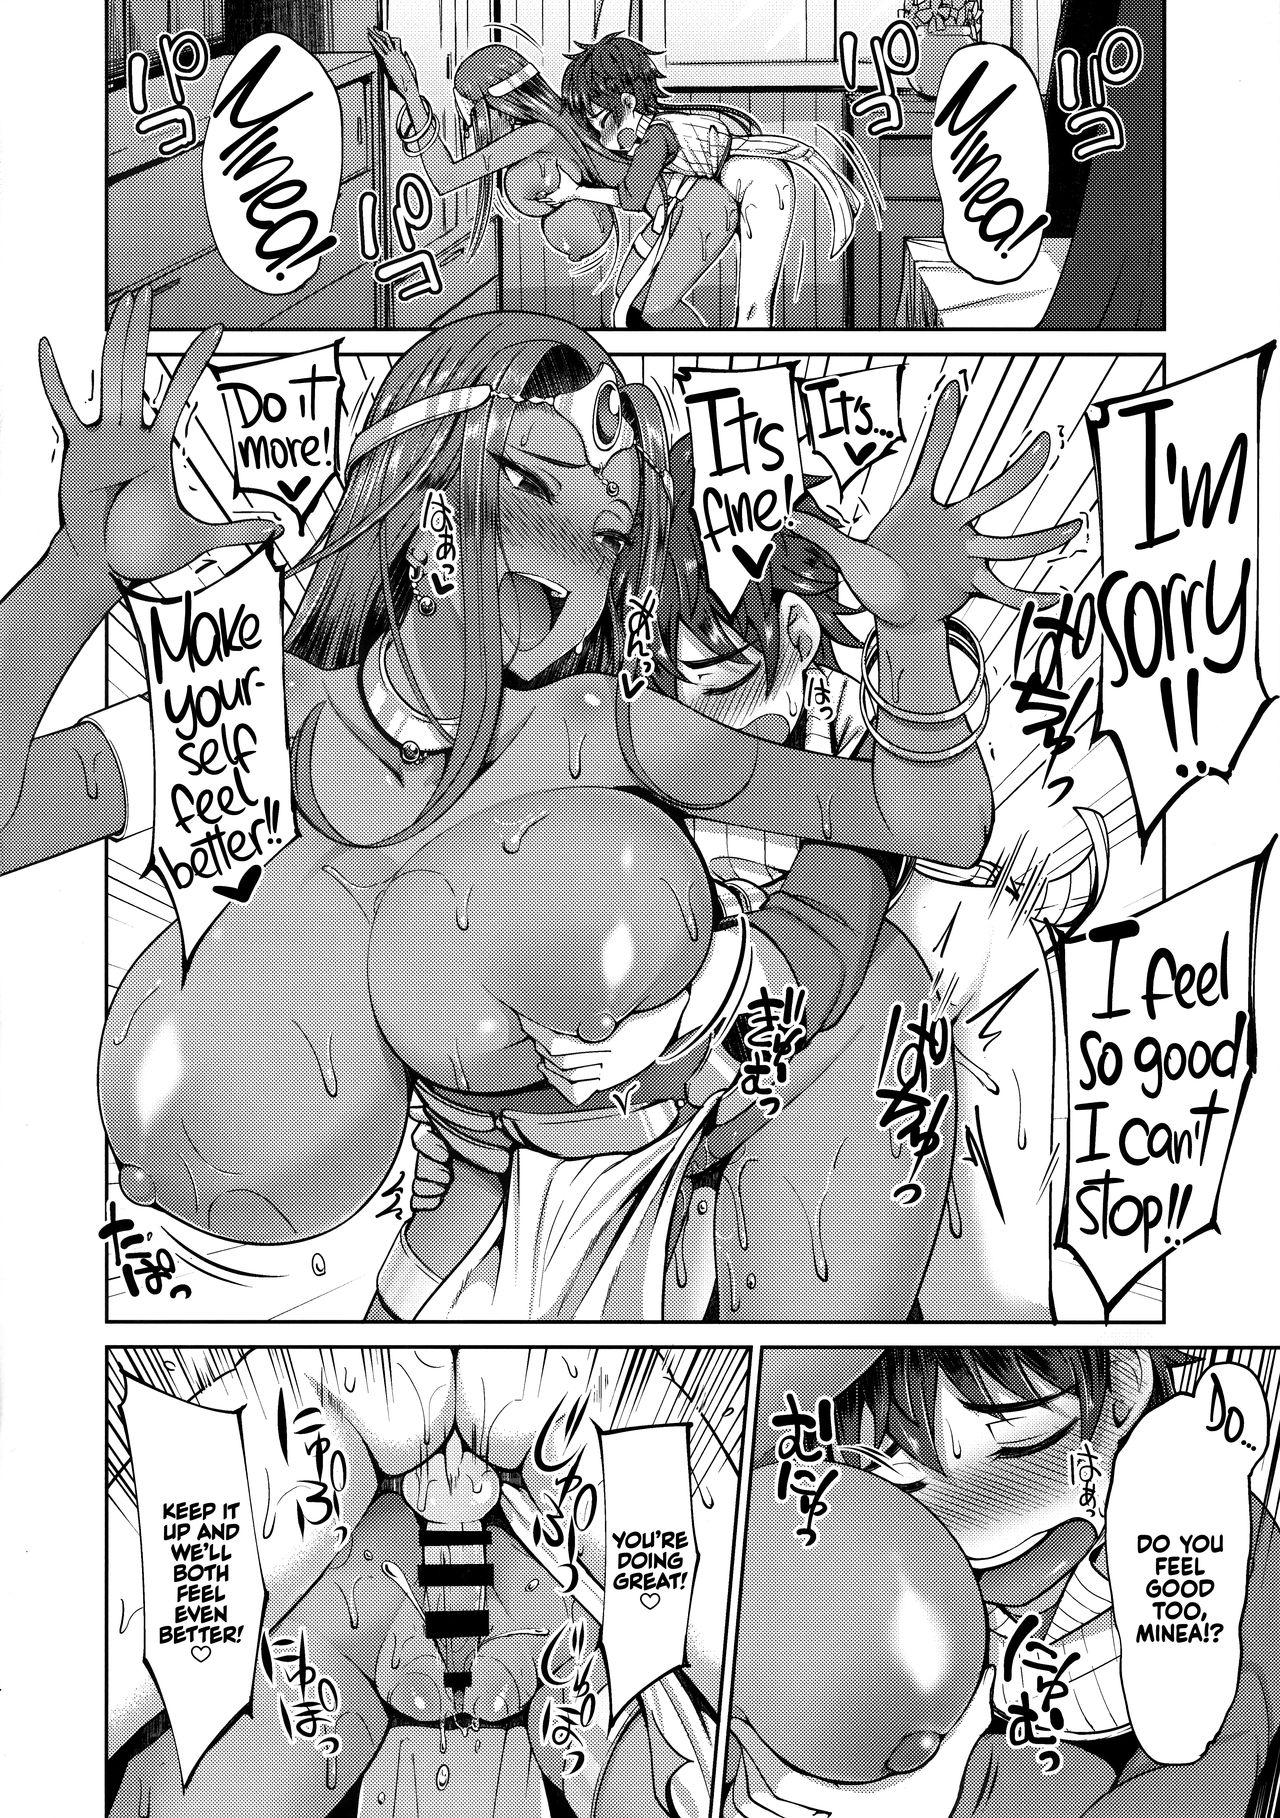 (C97) [Arearee] Manya-san to Minea-san to Matamata Are Suru Hon   Yet Another Manya And Minea Doing You-Know-What Book (Dragon Quest IV) [English] =TLL + mrwayne= 12